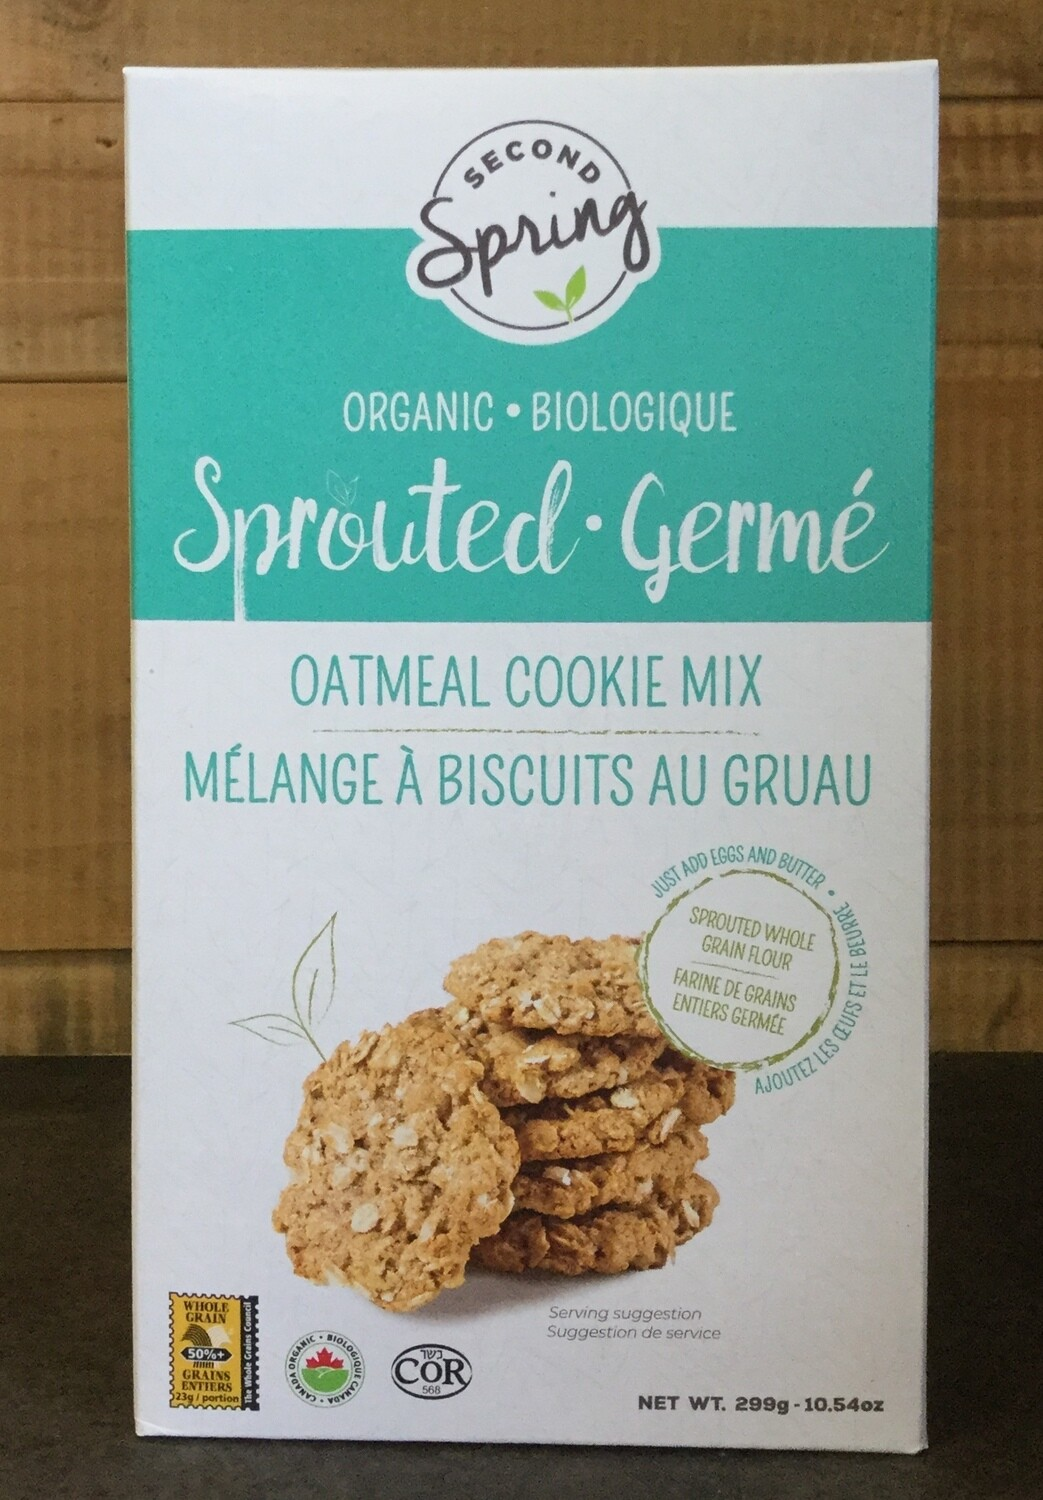 SECOND SPRING Oatmeal Cookie Mix